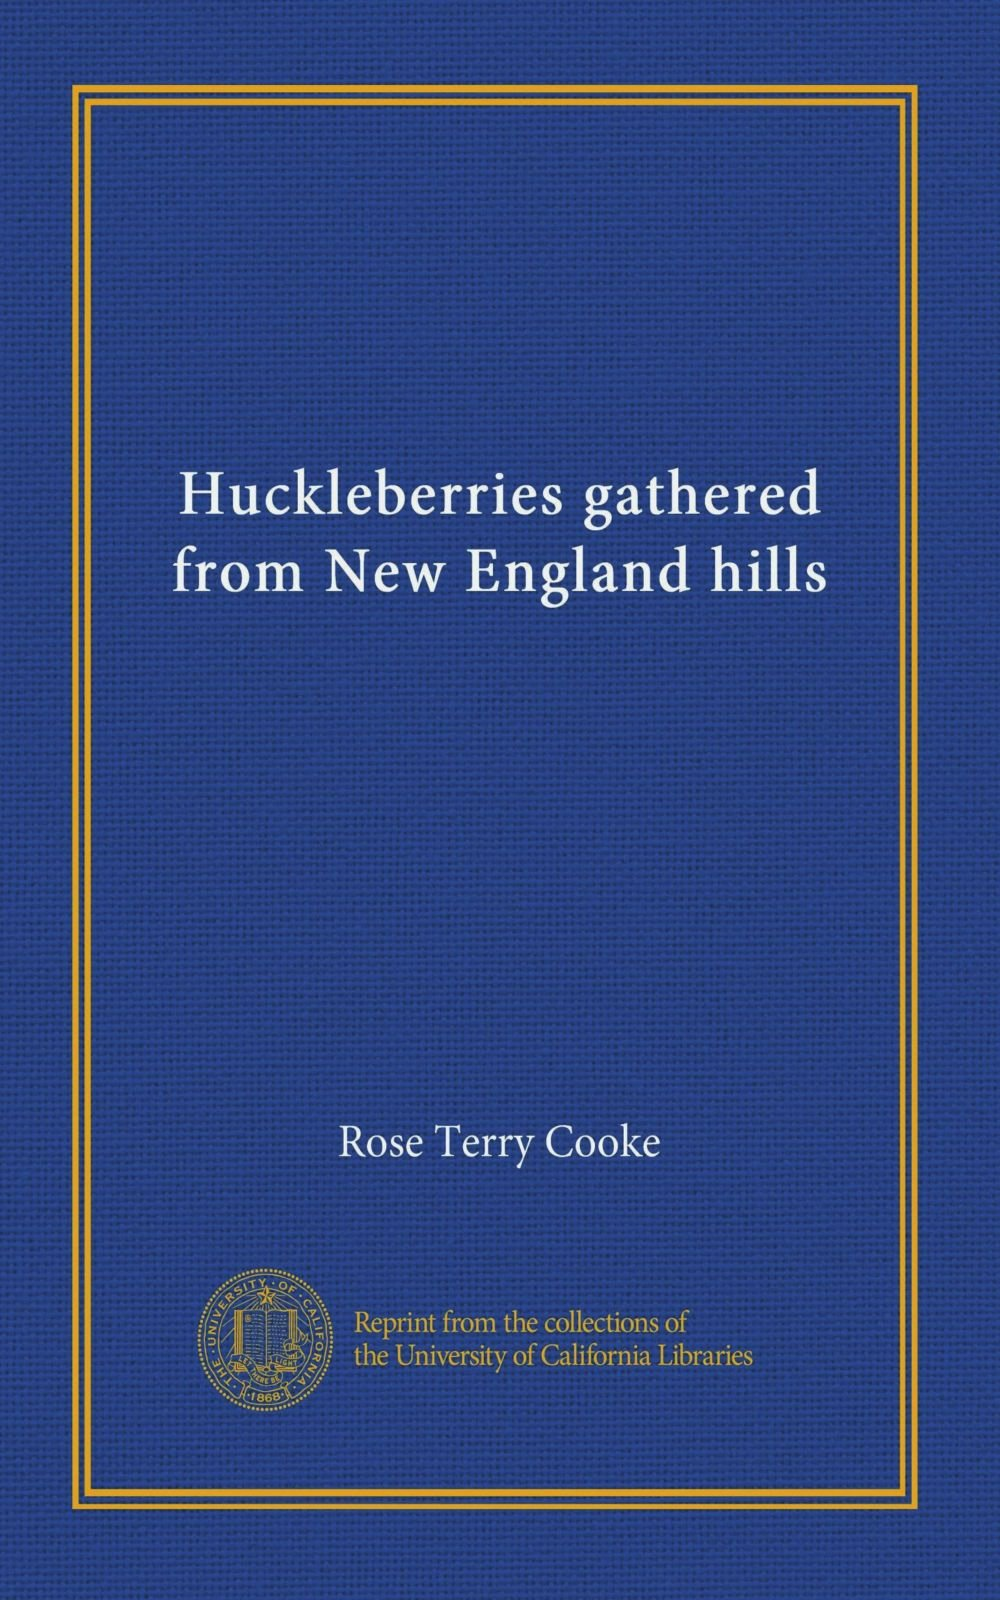 Download Huckleberries gathered from New England hills PDF